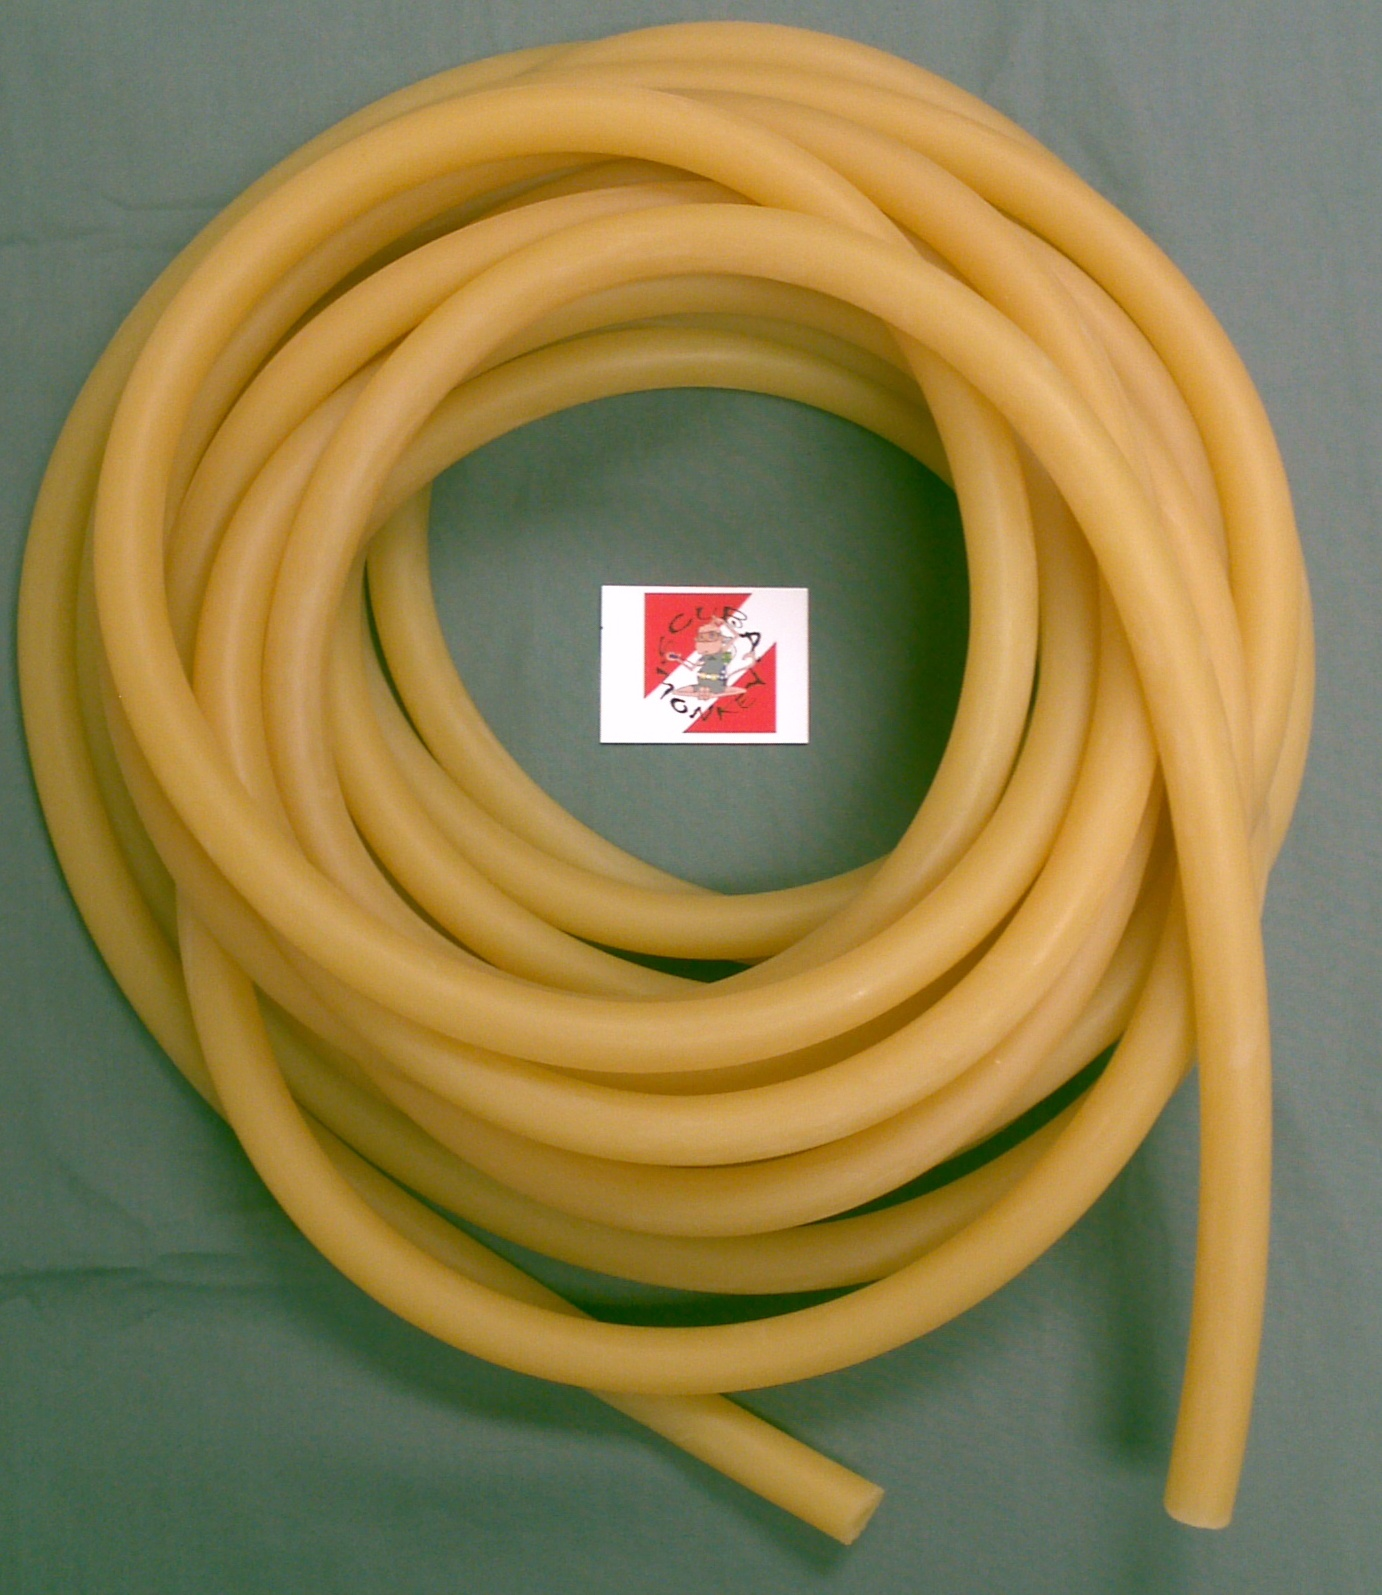 Amber Per ft Tubing 1/2 Yellow